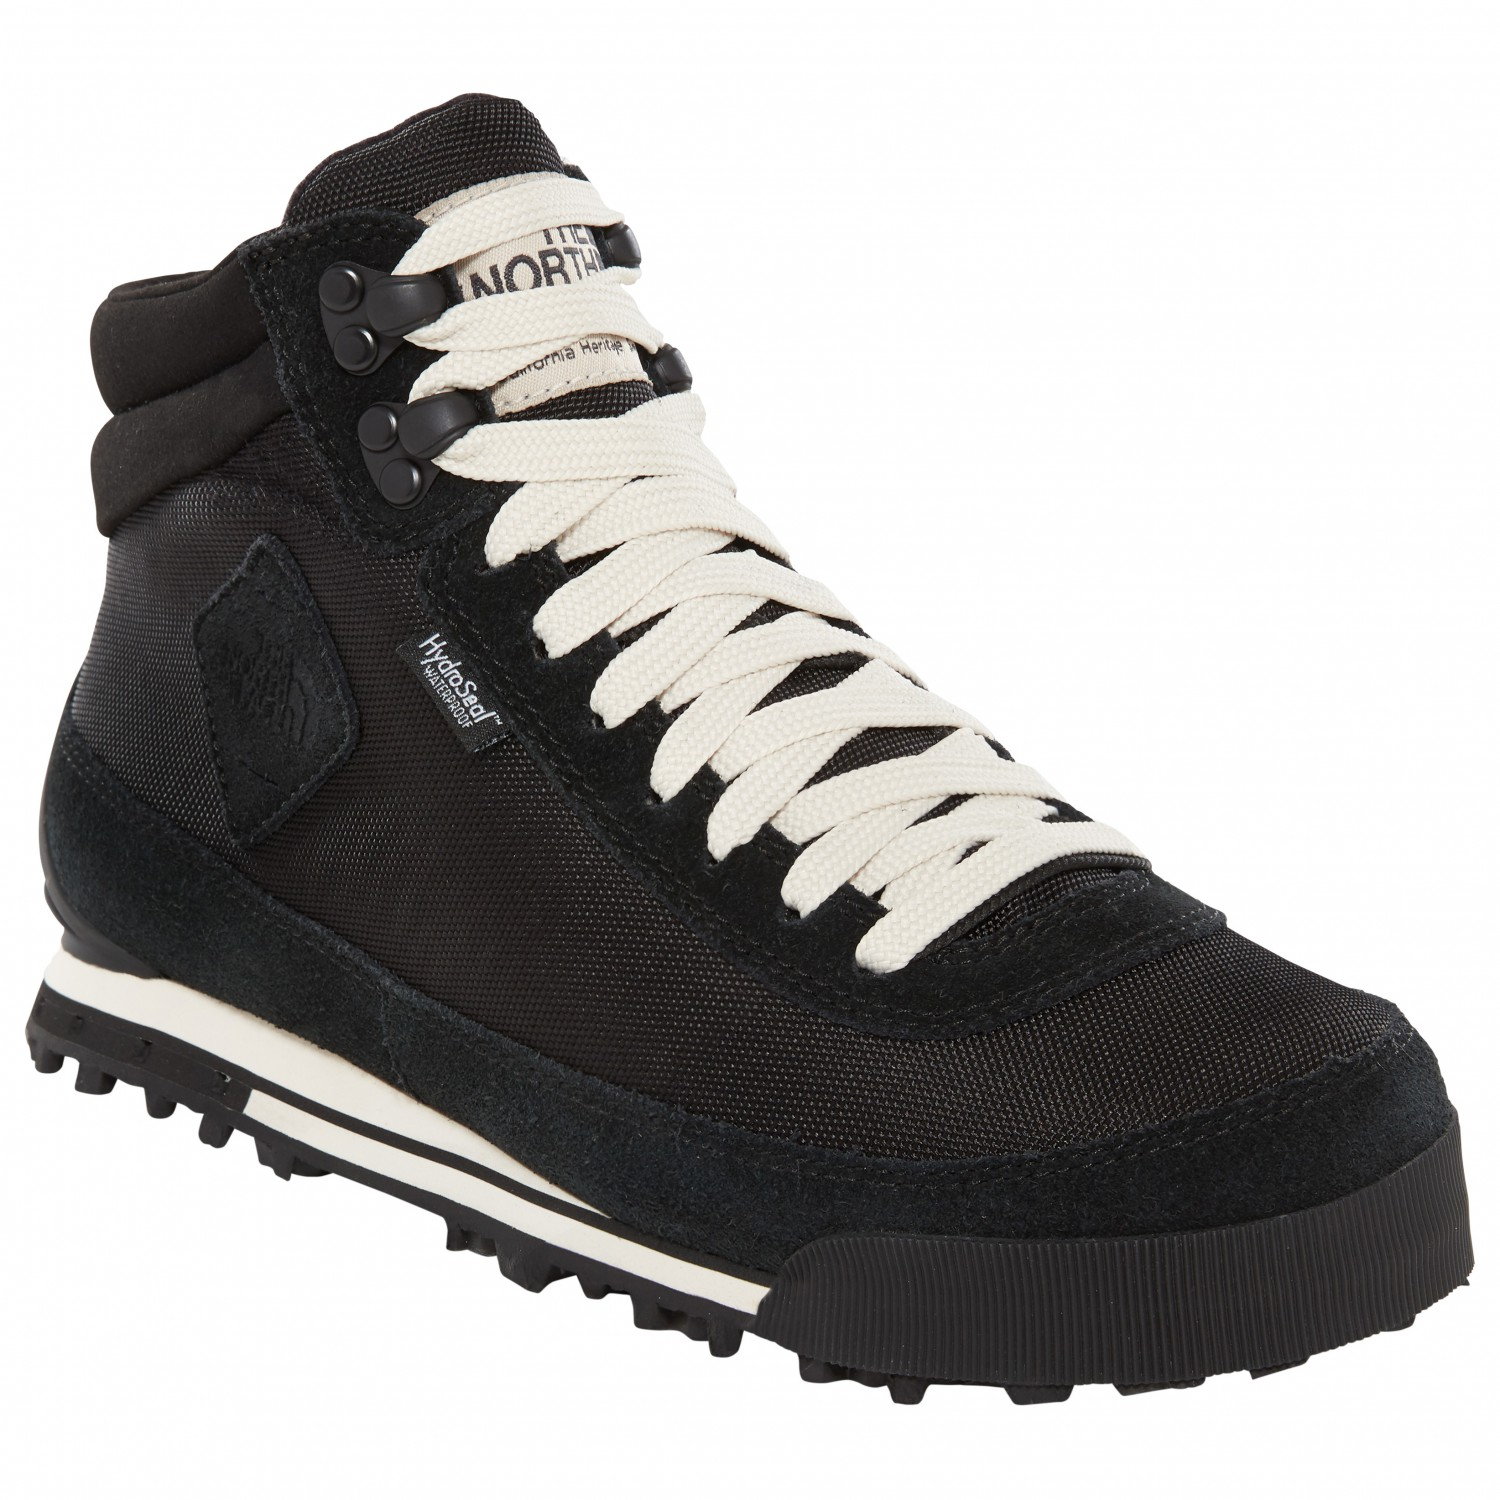 996e89e72bc0b The North Face Back to Berkeley Boot 2 - Bottes Femme   Livraison gratuite    Alpiniste.fr